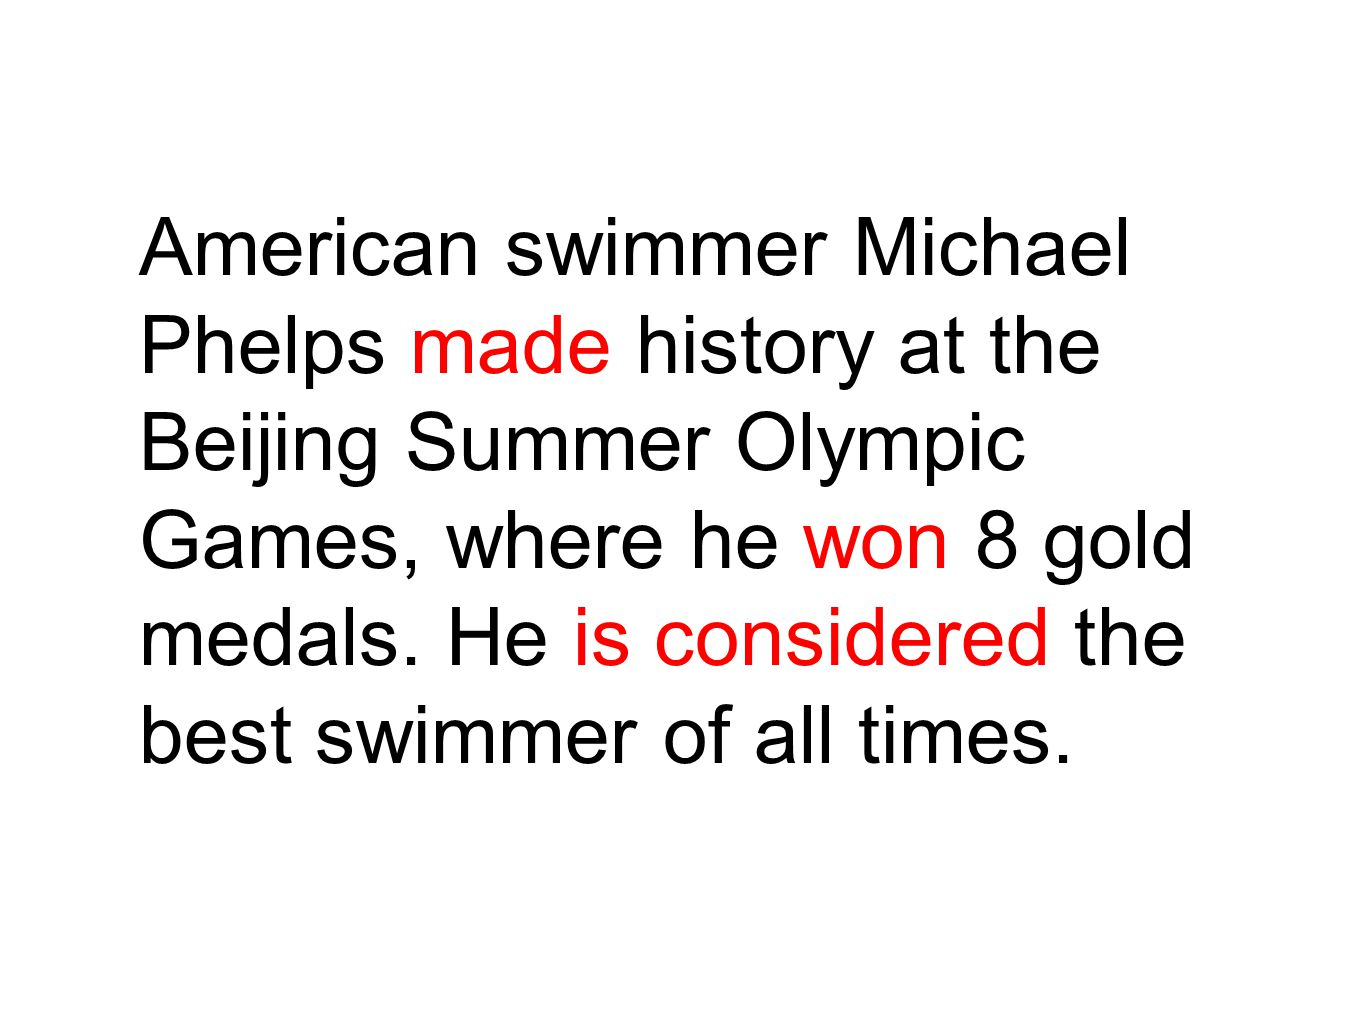 American swimmer Michael Phelps made history at the Beijing Summer Olympic Games, where he won 8 gold medals. He is considered the best swimmer of all